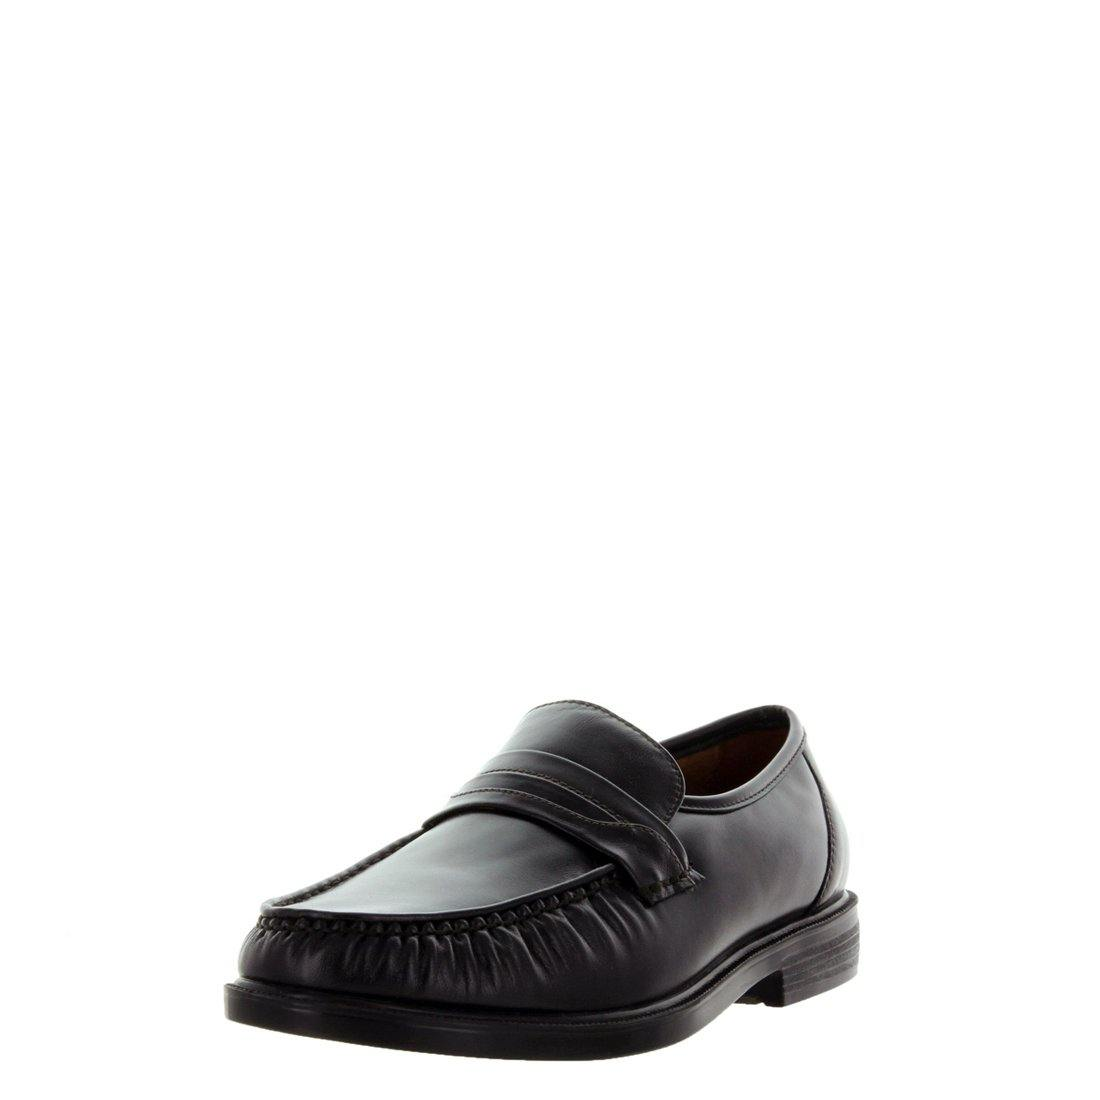 TARGA II by CHURCHILL - iShoes - Men's Shoes, Men's Shoes: Dress - FOOTWEAR-FOOTWEAR